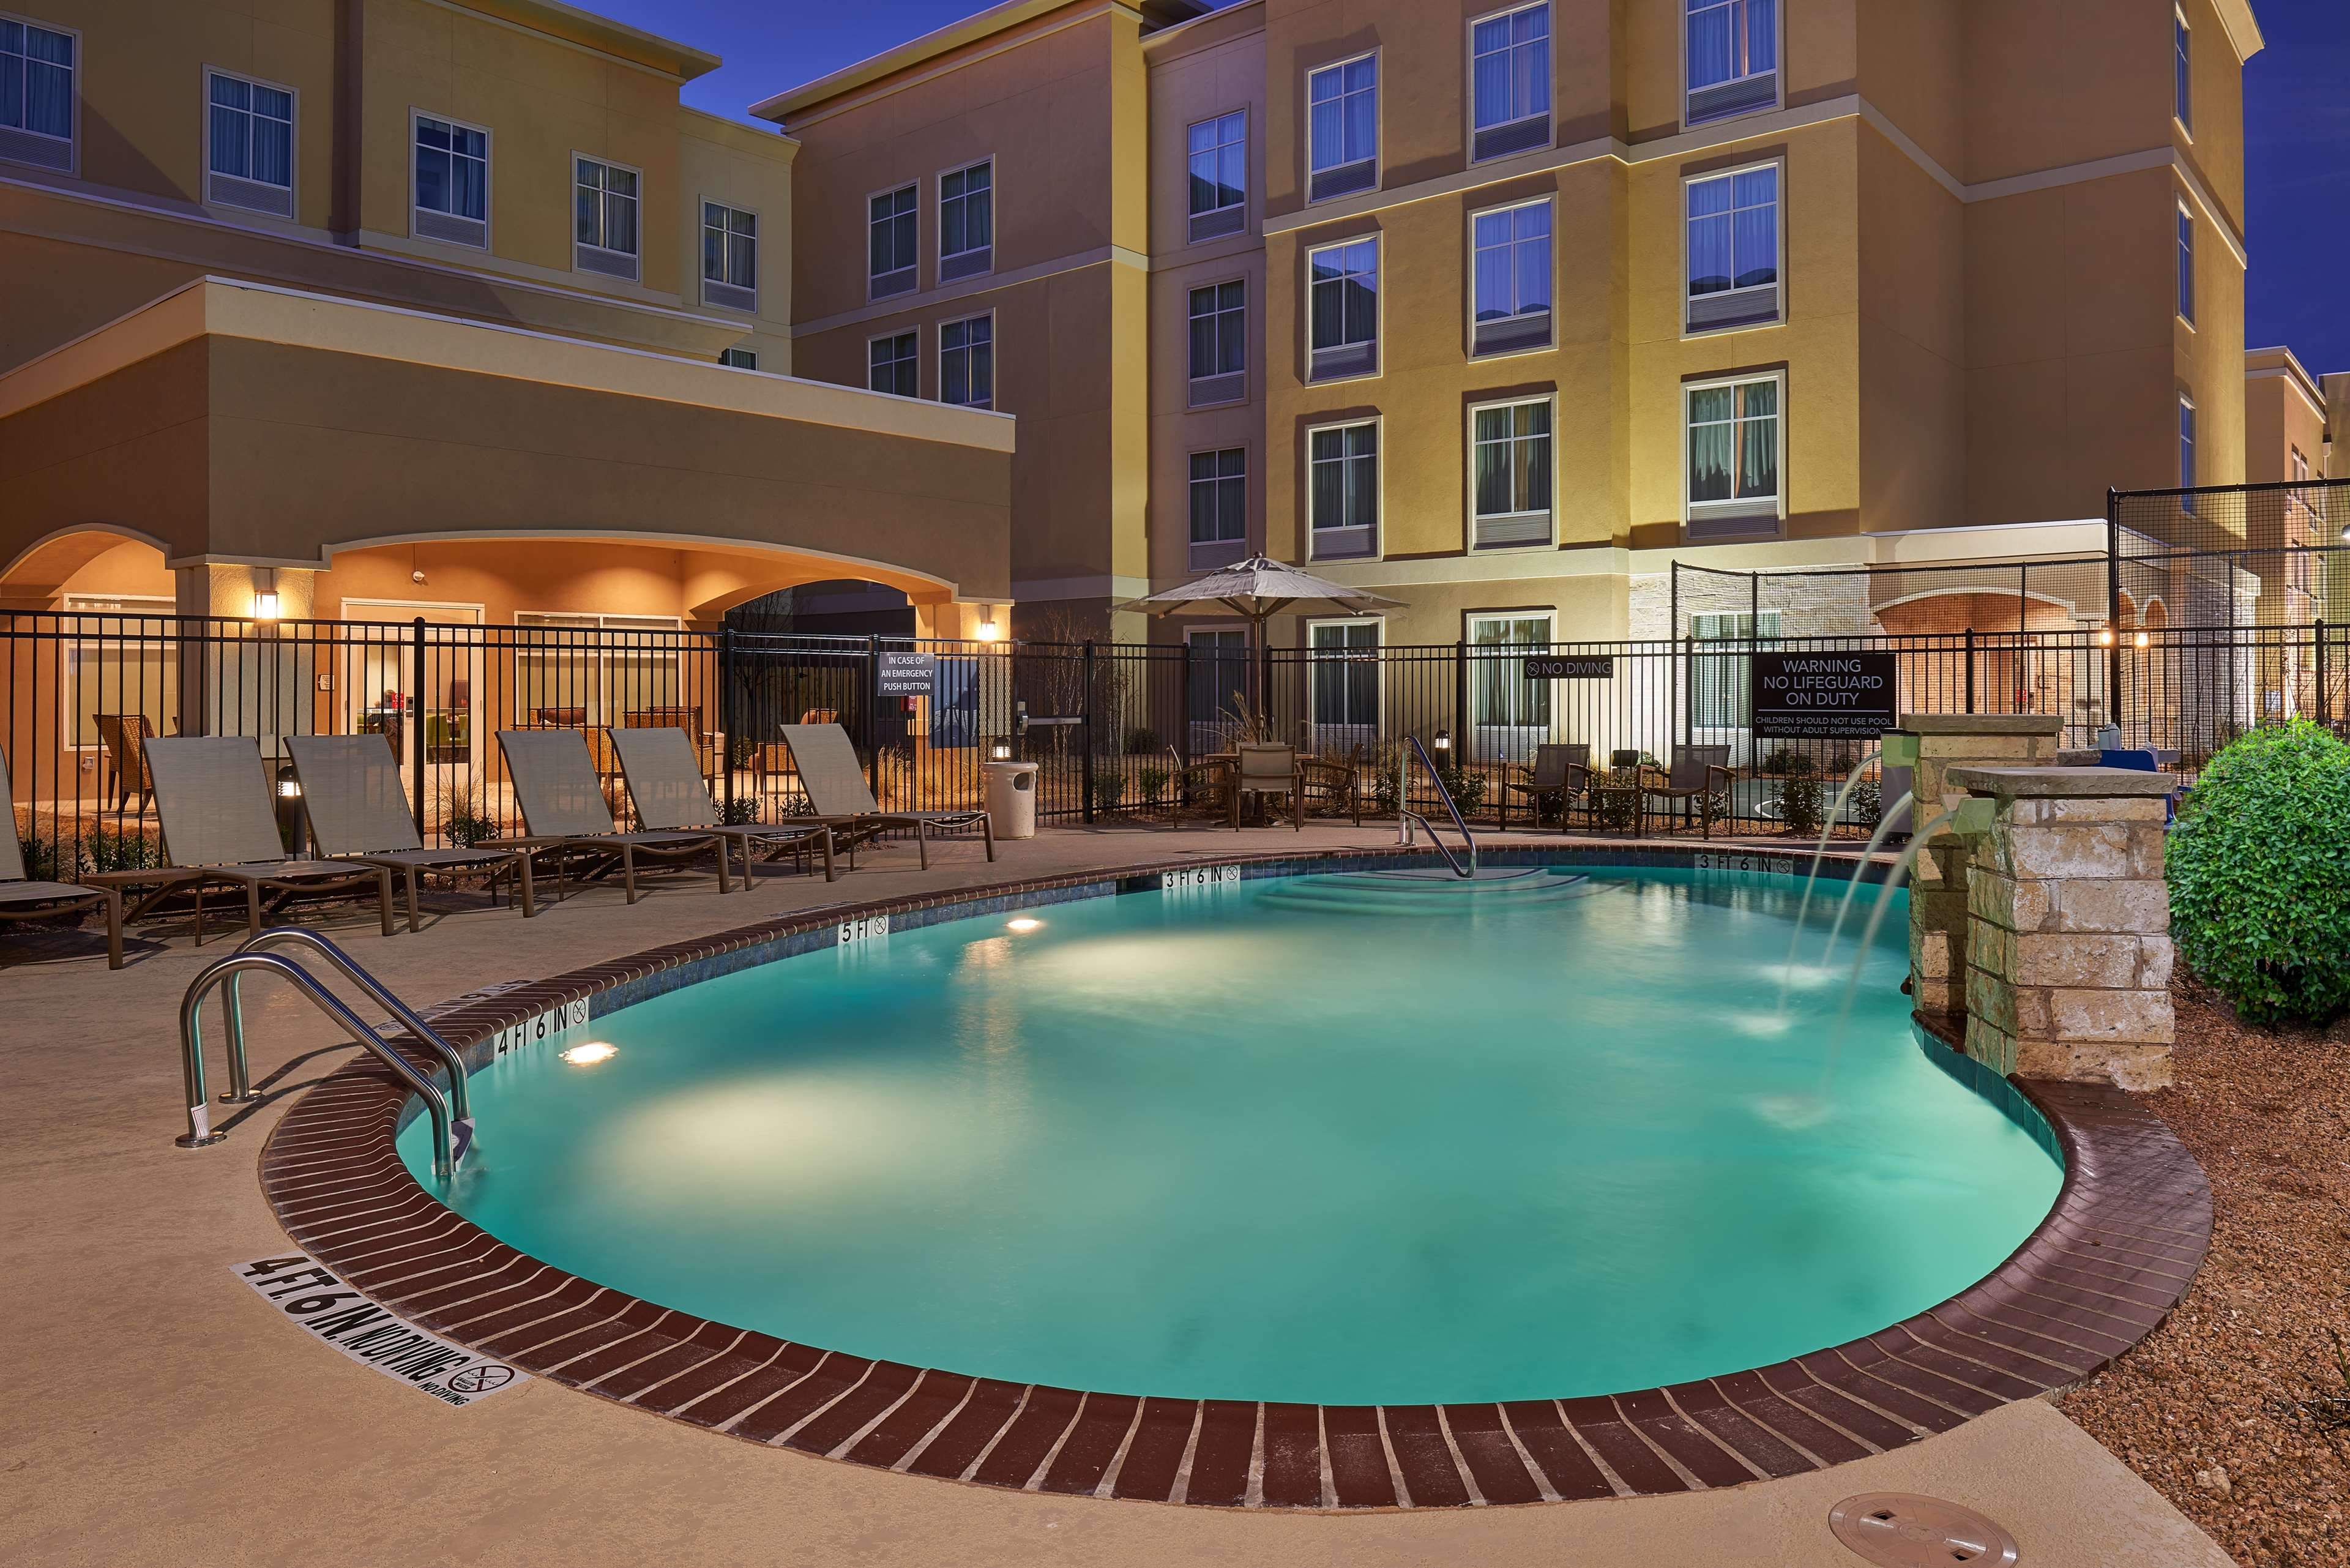 Homewood Suites by Hilton Odessa image 4